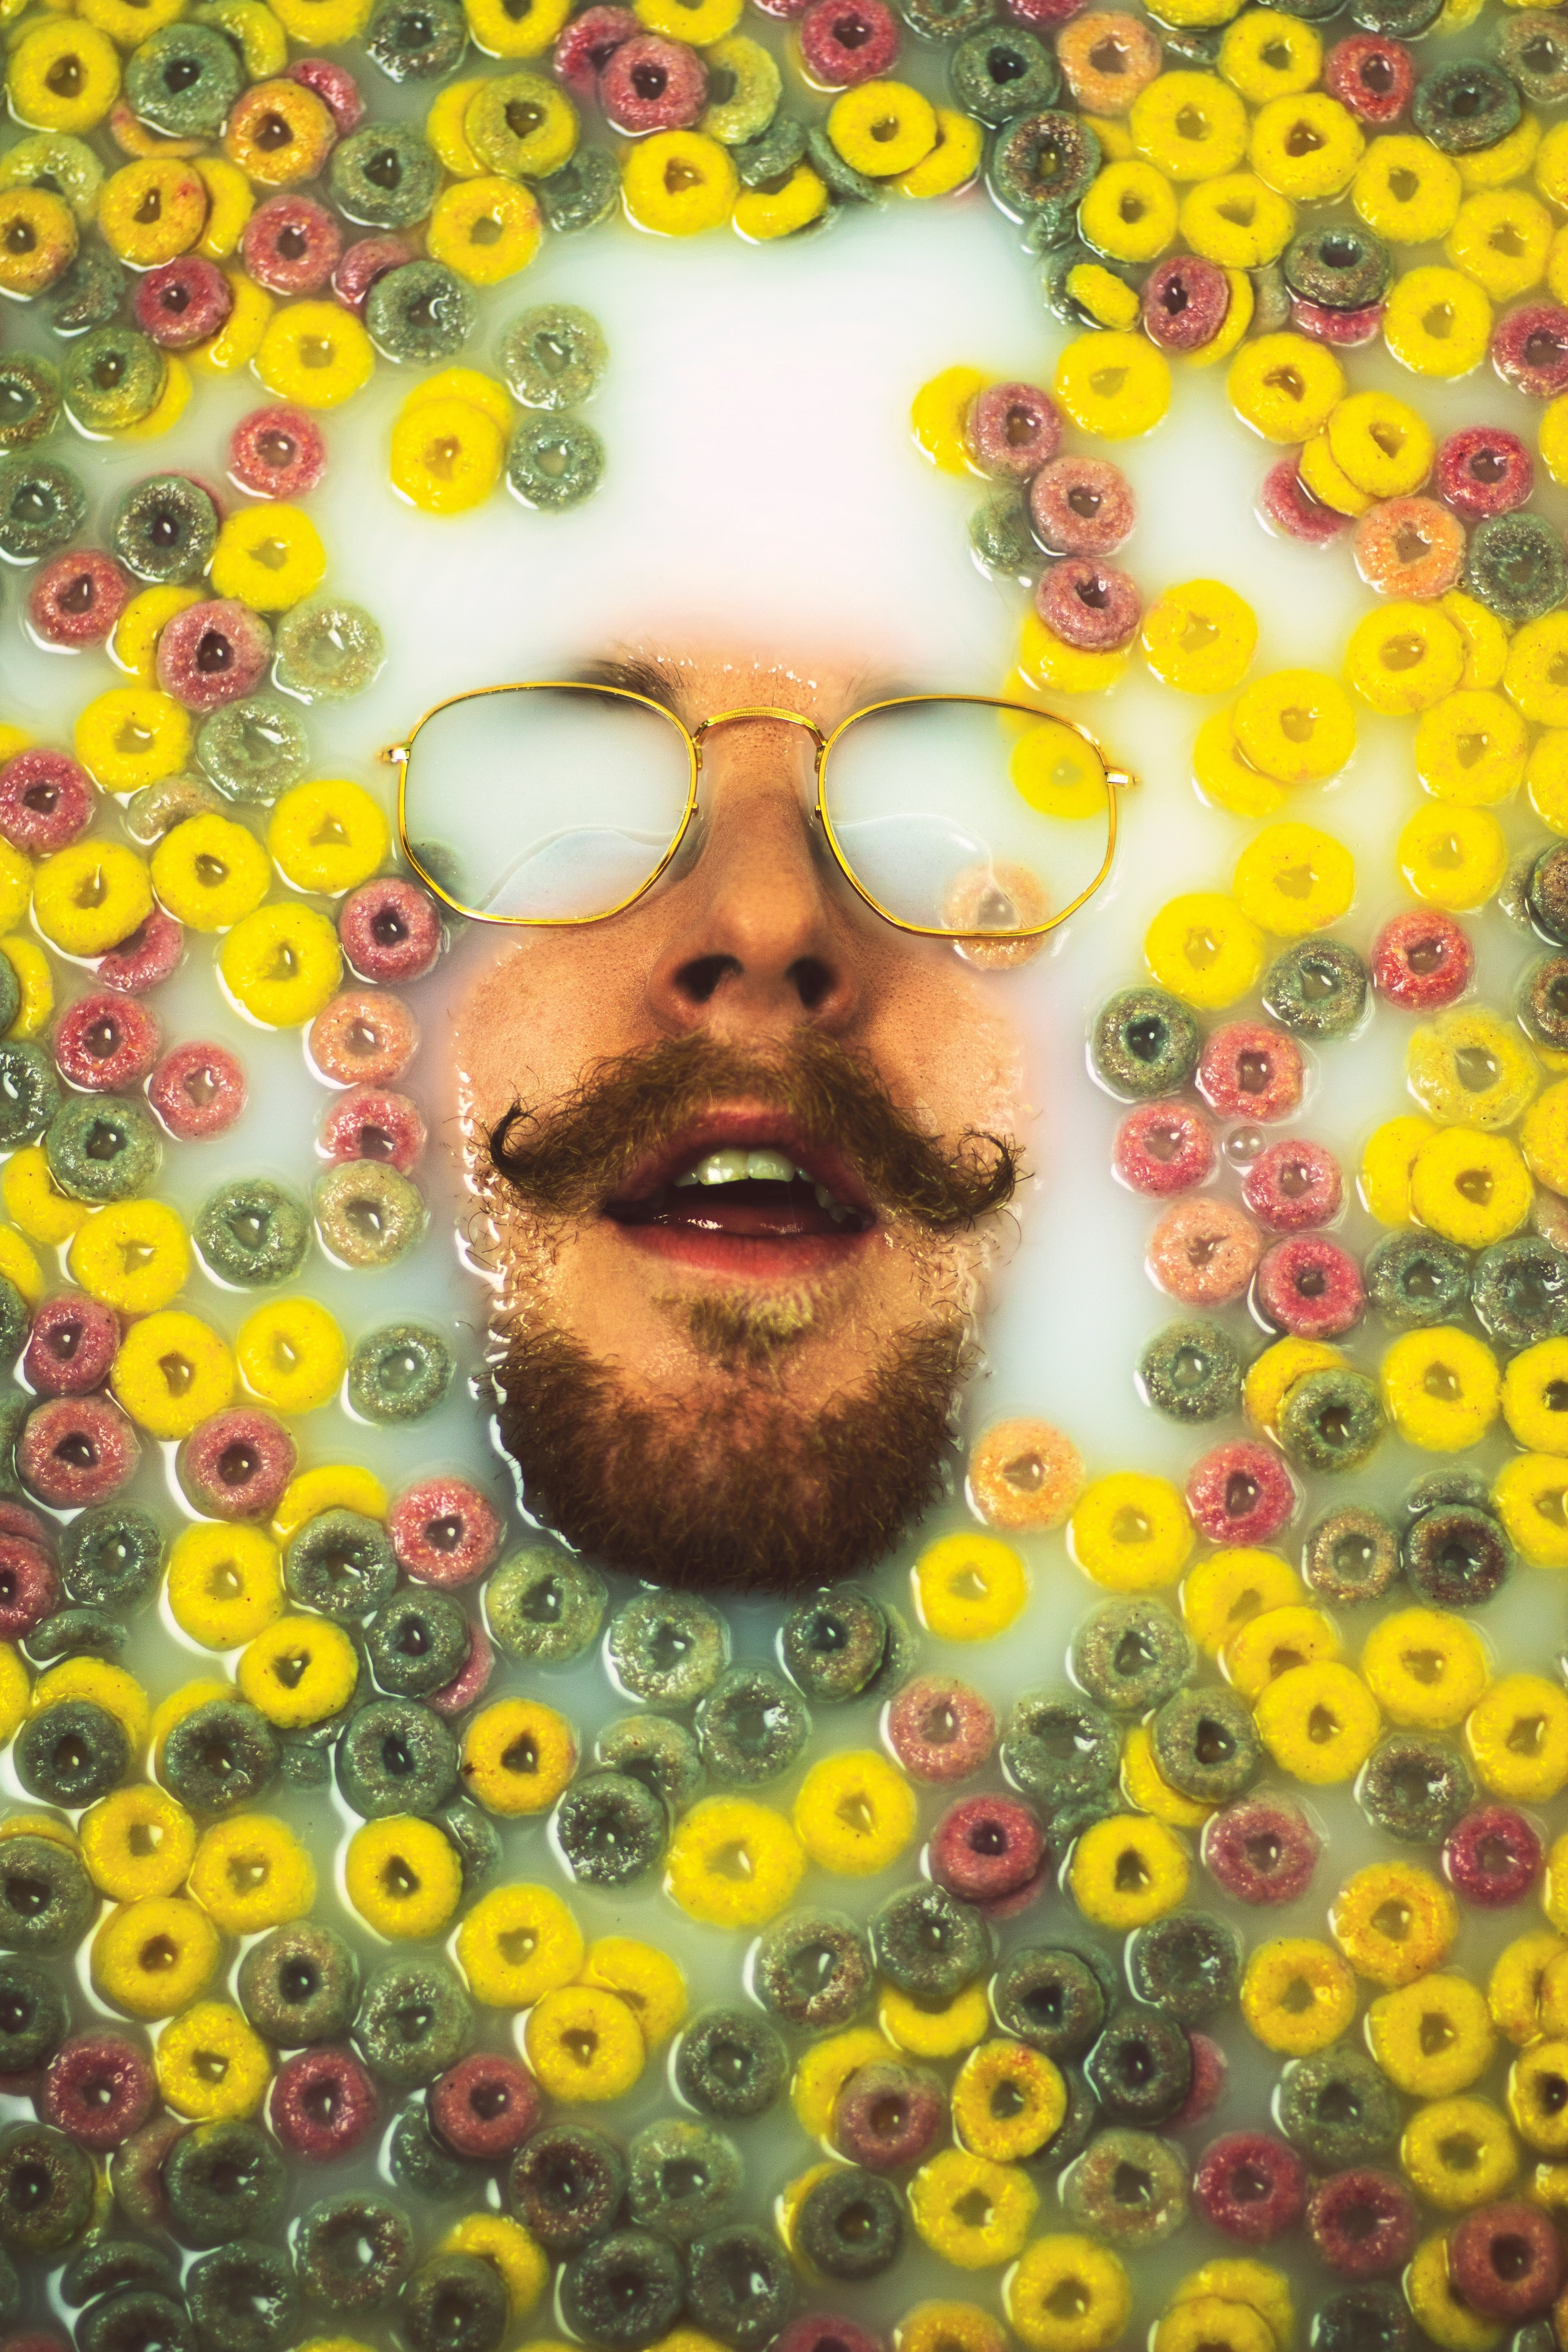 A man's face with a handlebar mustache and gold glasses is submerged in milk and fruit loops